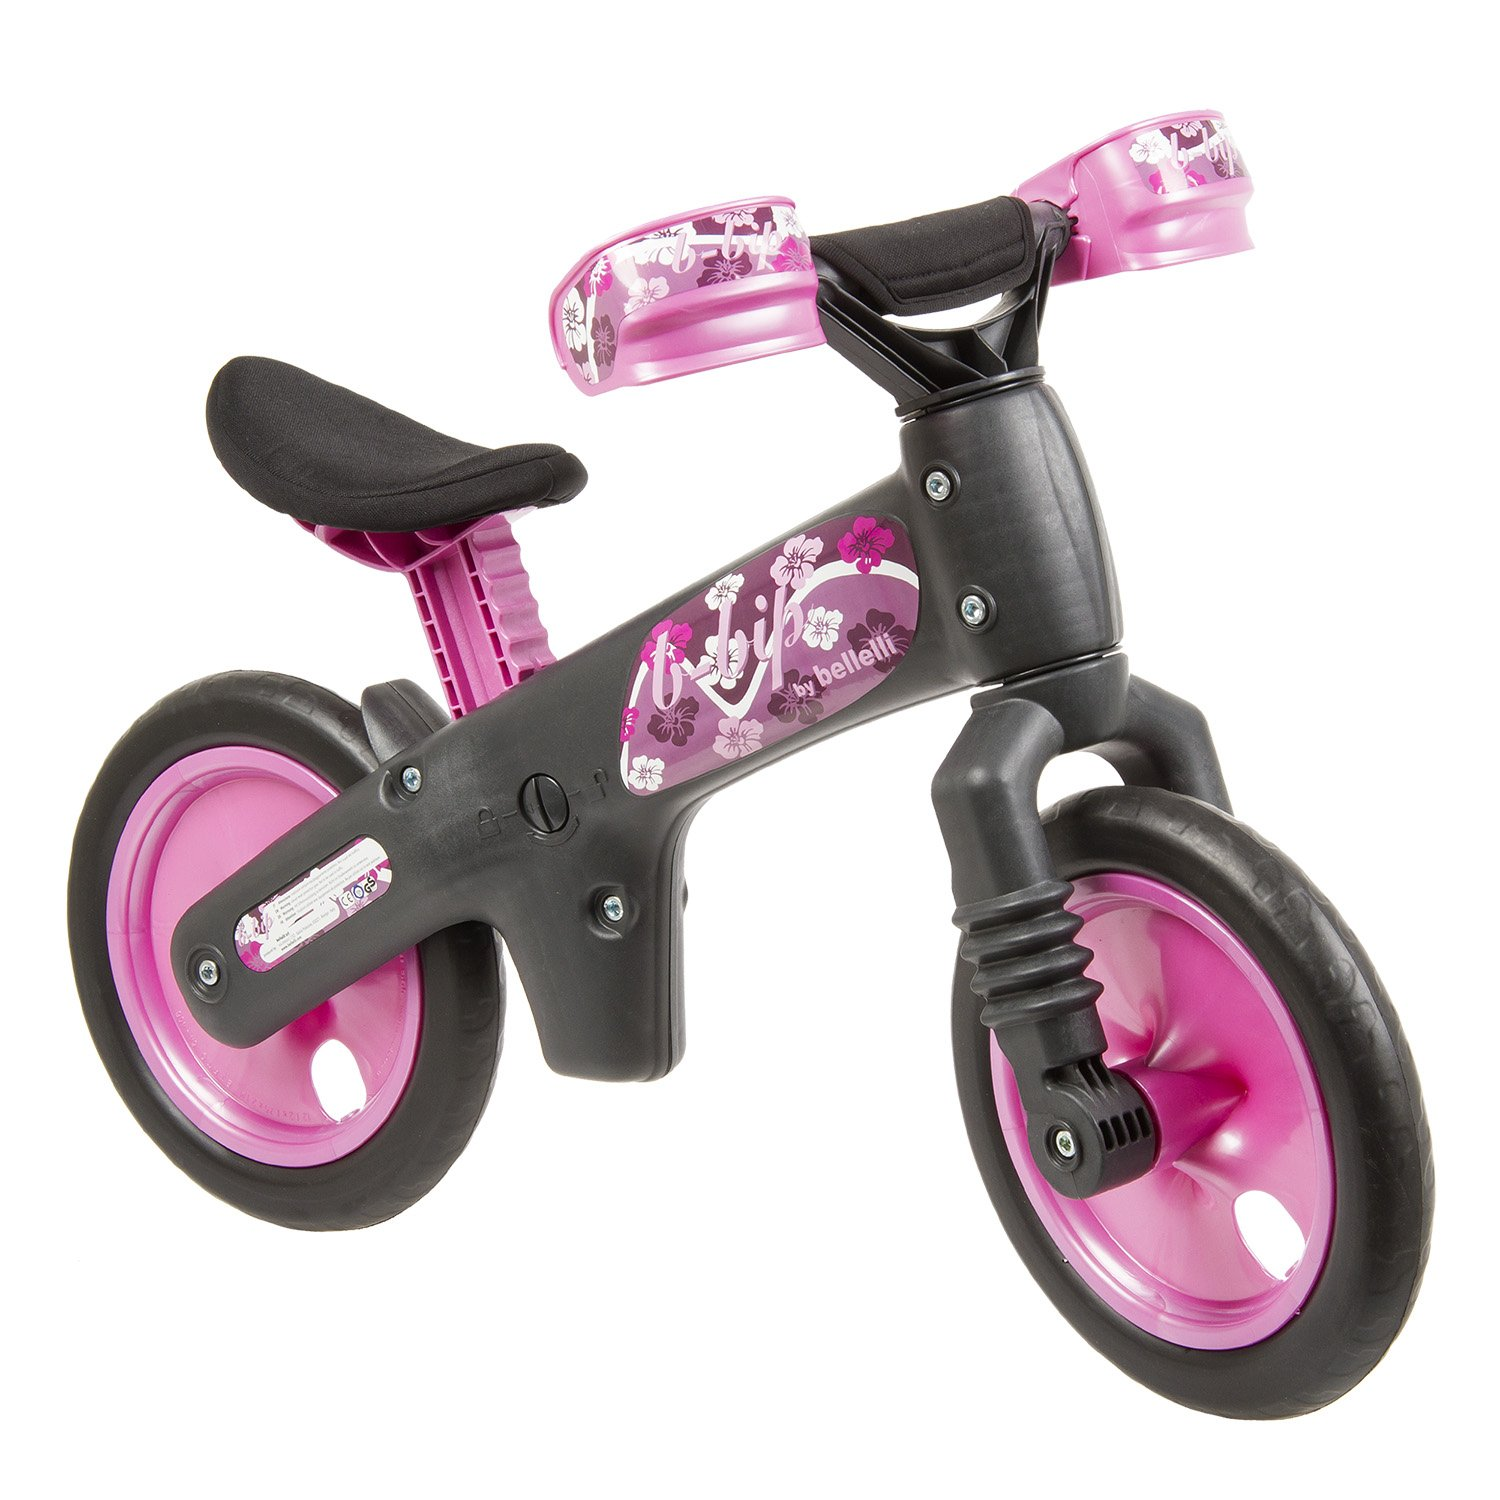 B-BIP Safest Balance Bike by MammaCangura 100% made in Italy with certified non-toxic plastics Bellelli - Italy 16599561